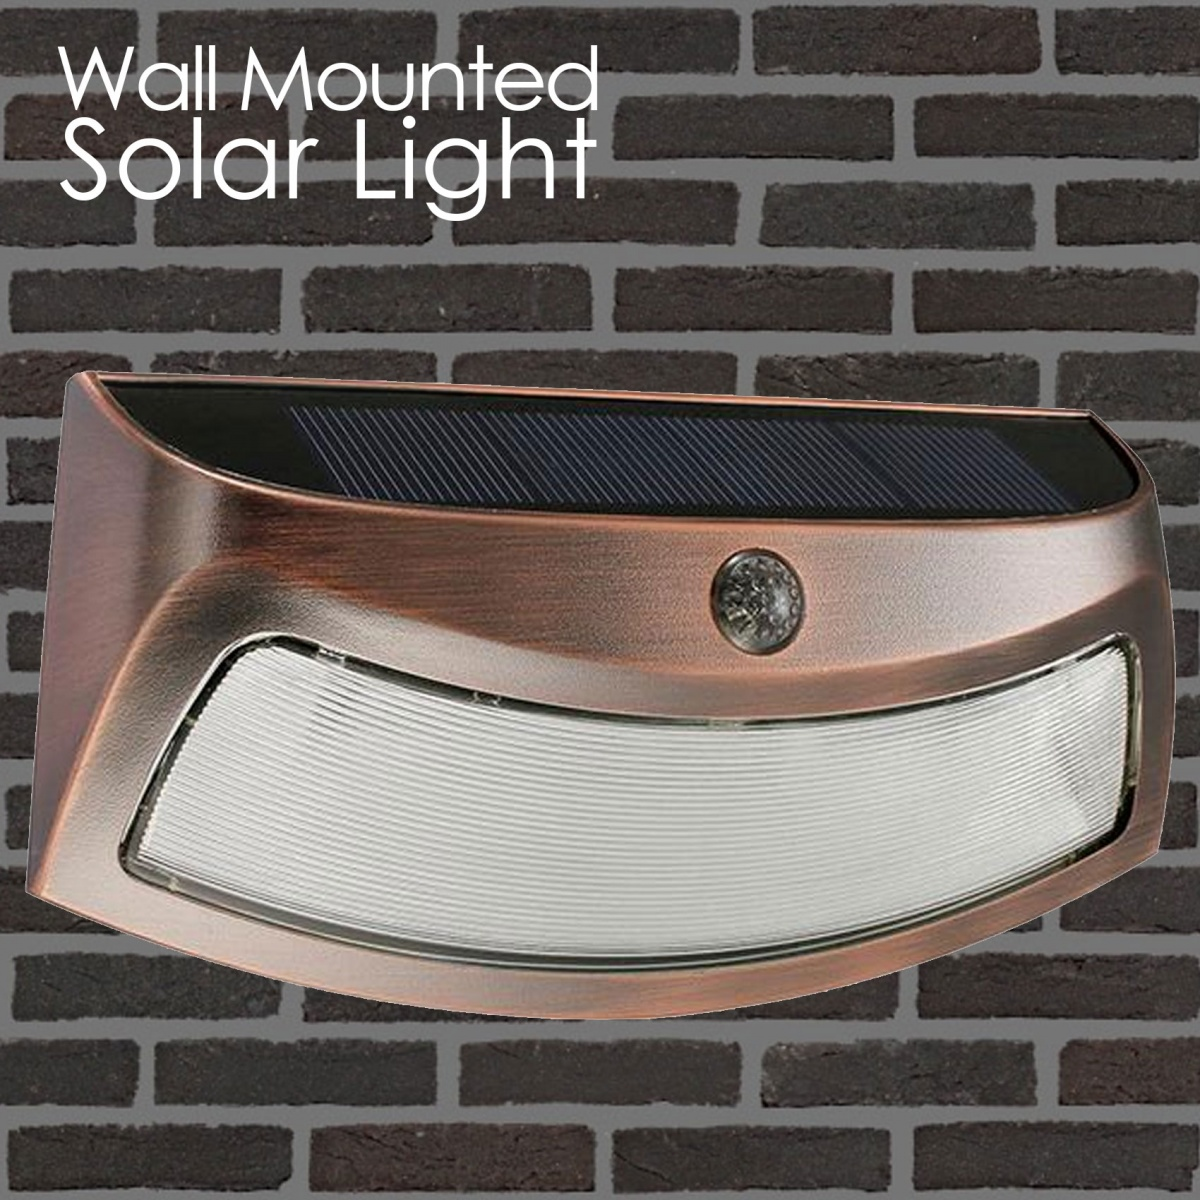 Wall Mounted Solar Smile Light With Motion Sensor - Brown